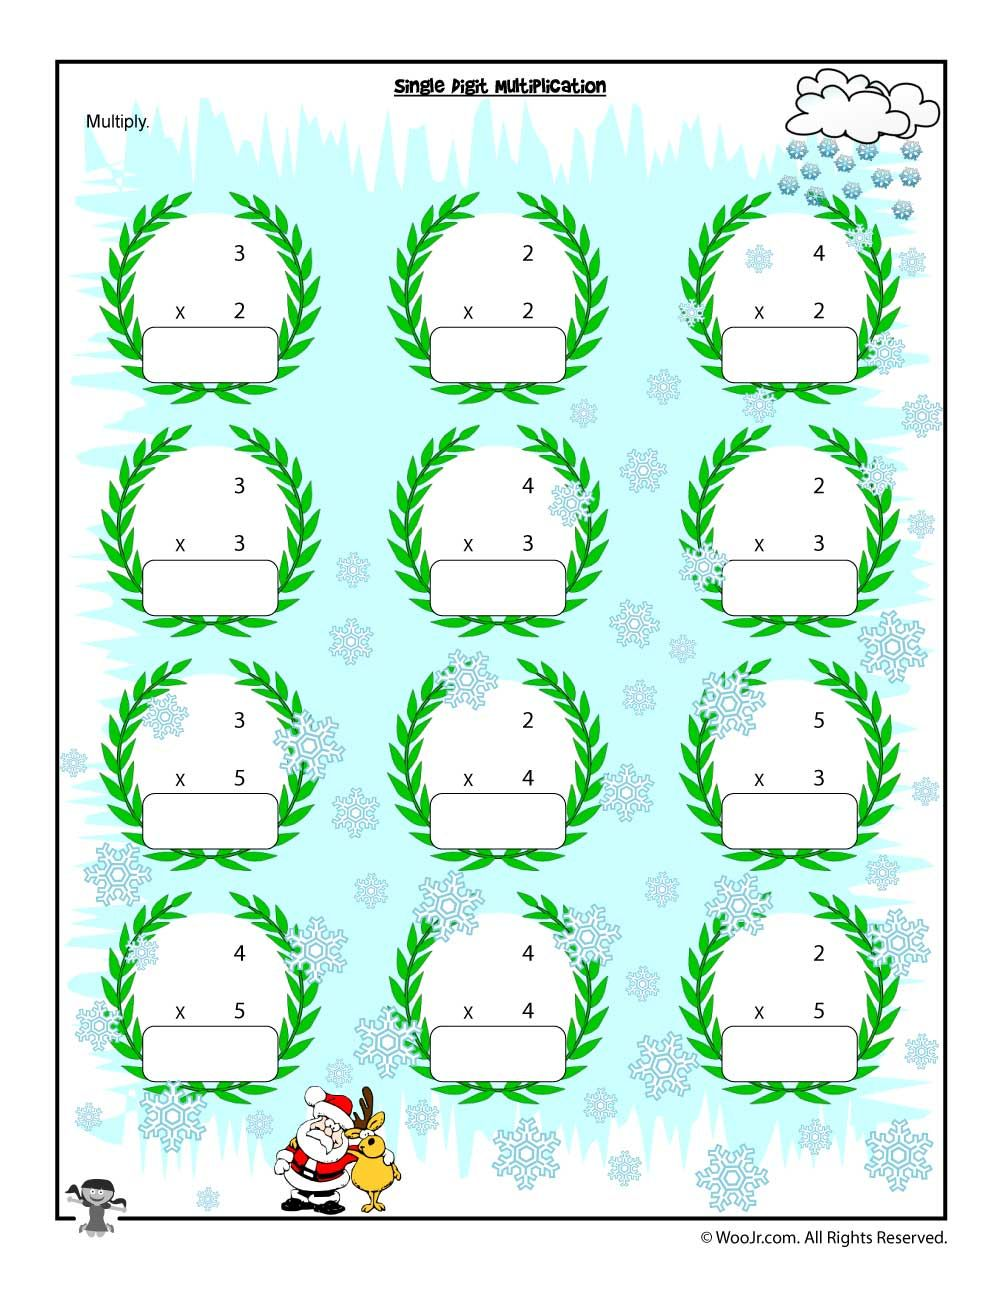 Single Digit Christmas Multiplication Worksheet | Multiplication ...